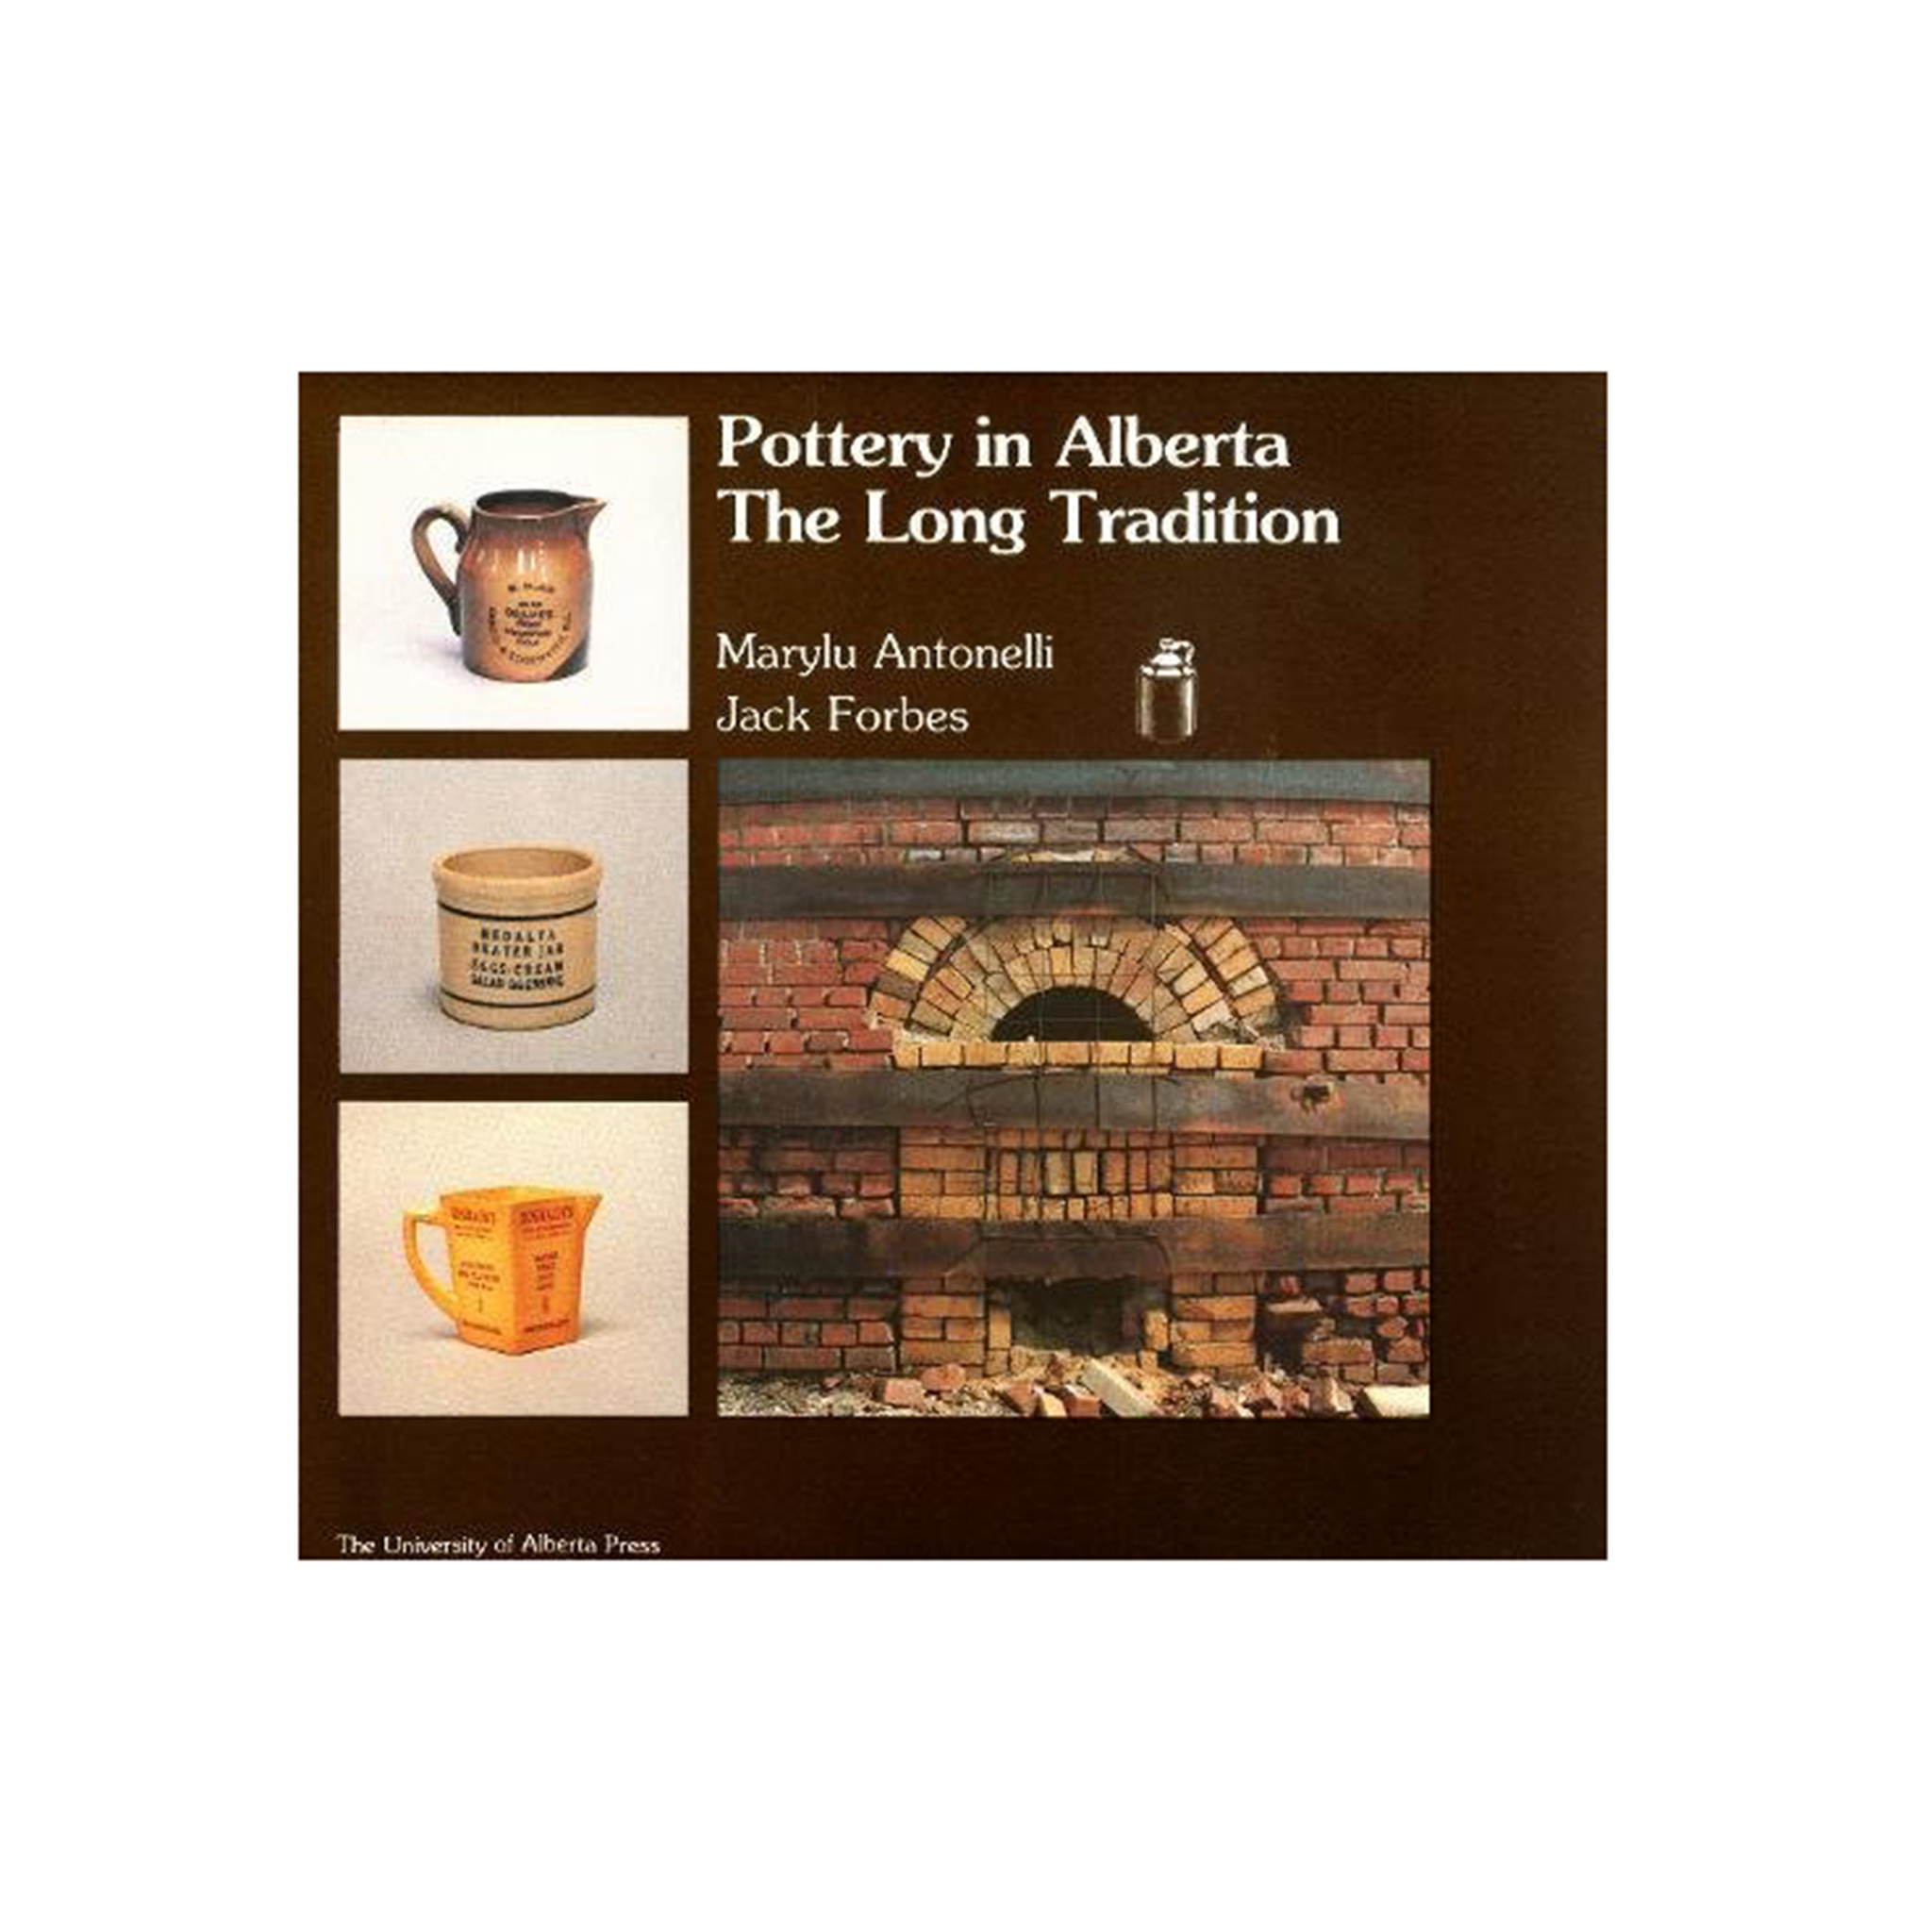 Pottery in Alberta: The Long Tradition